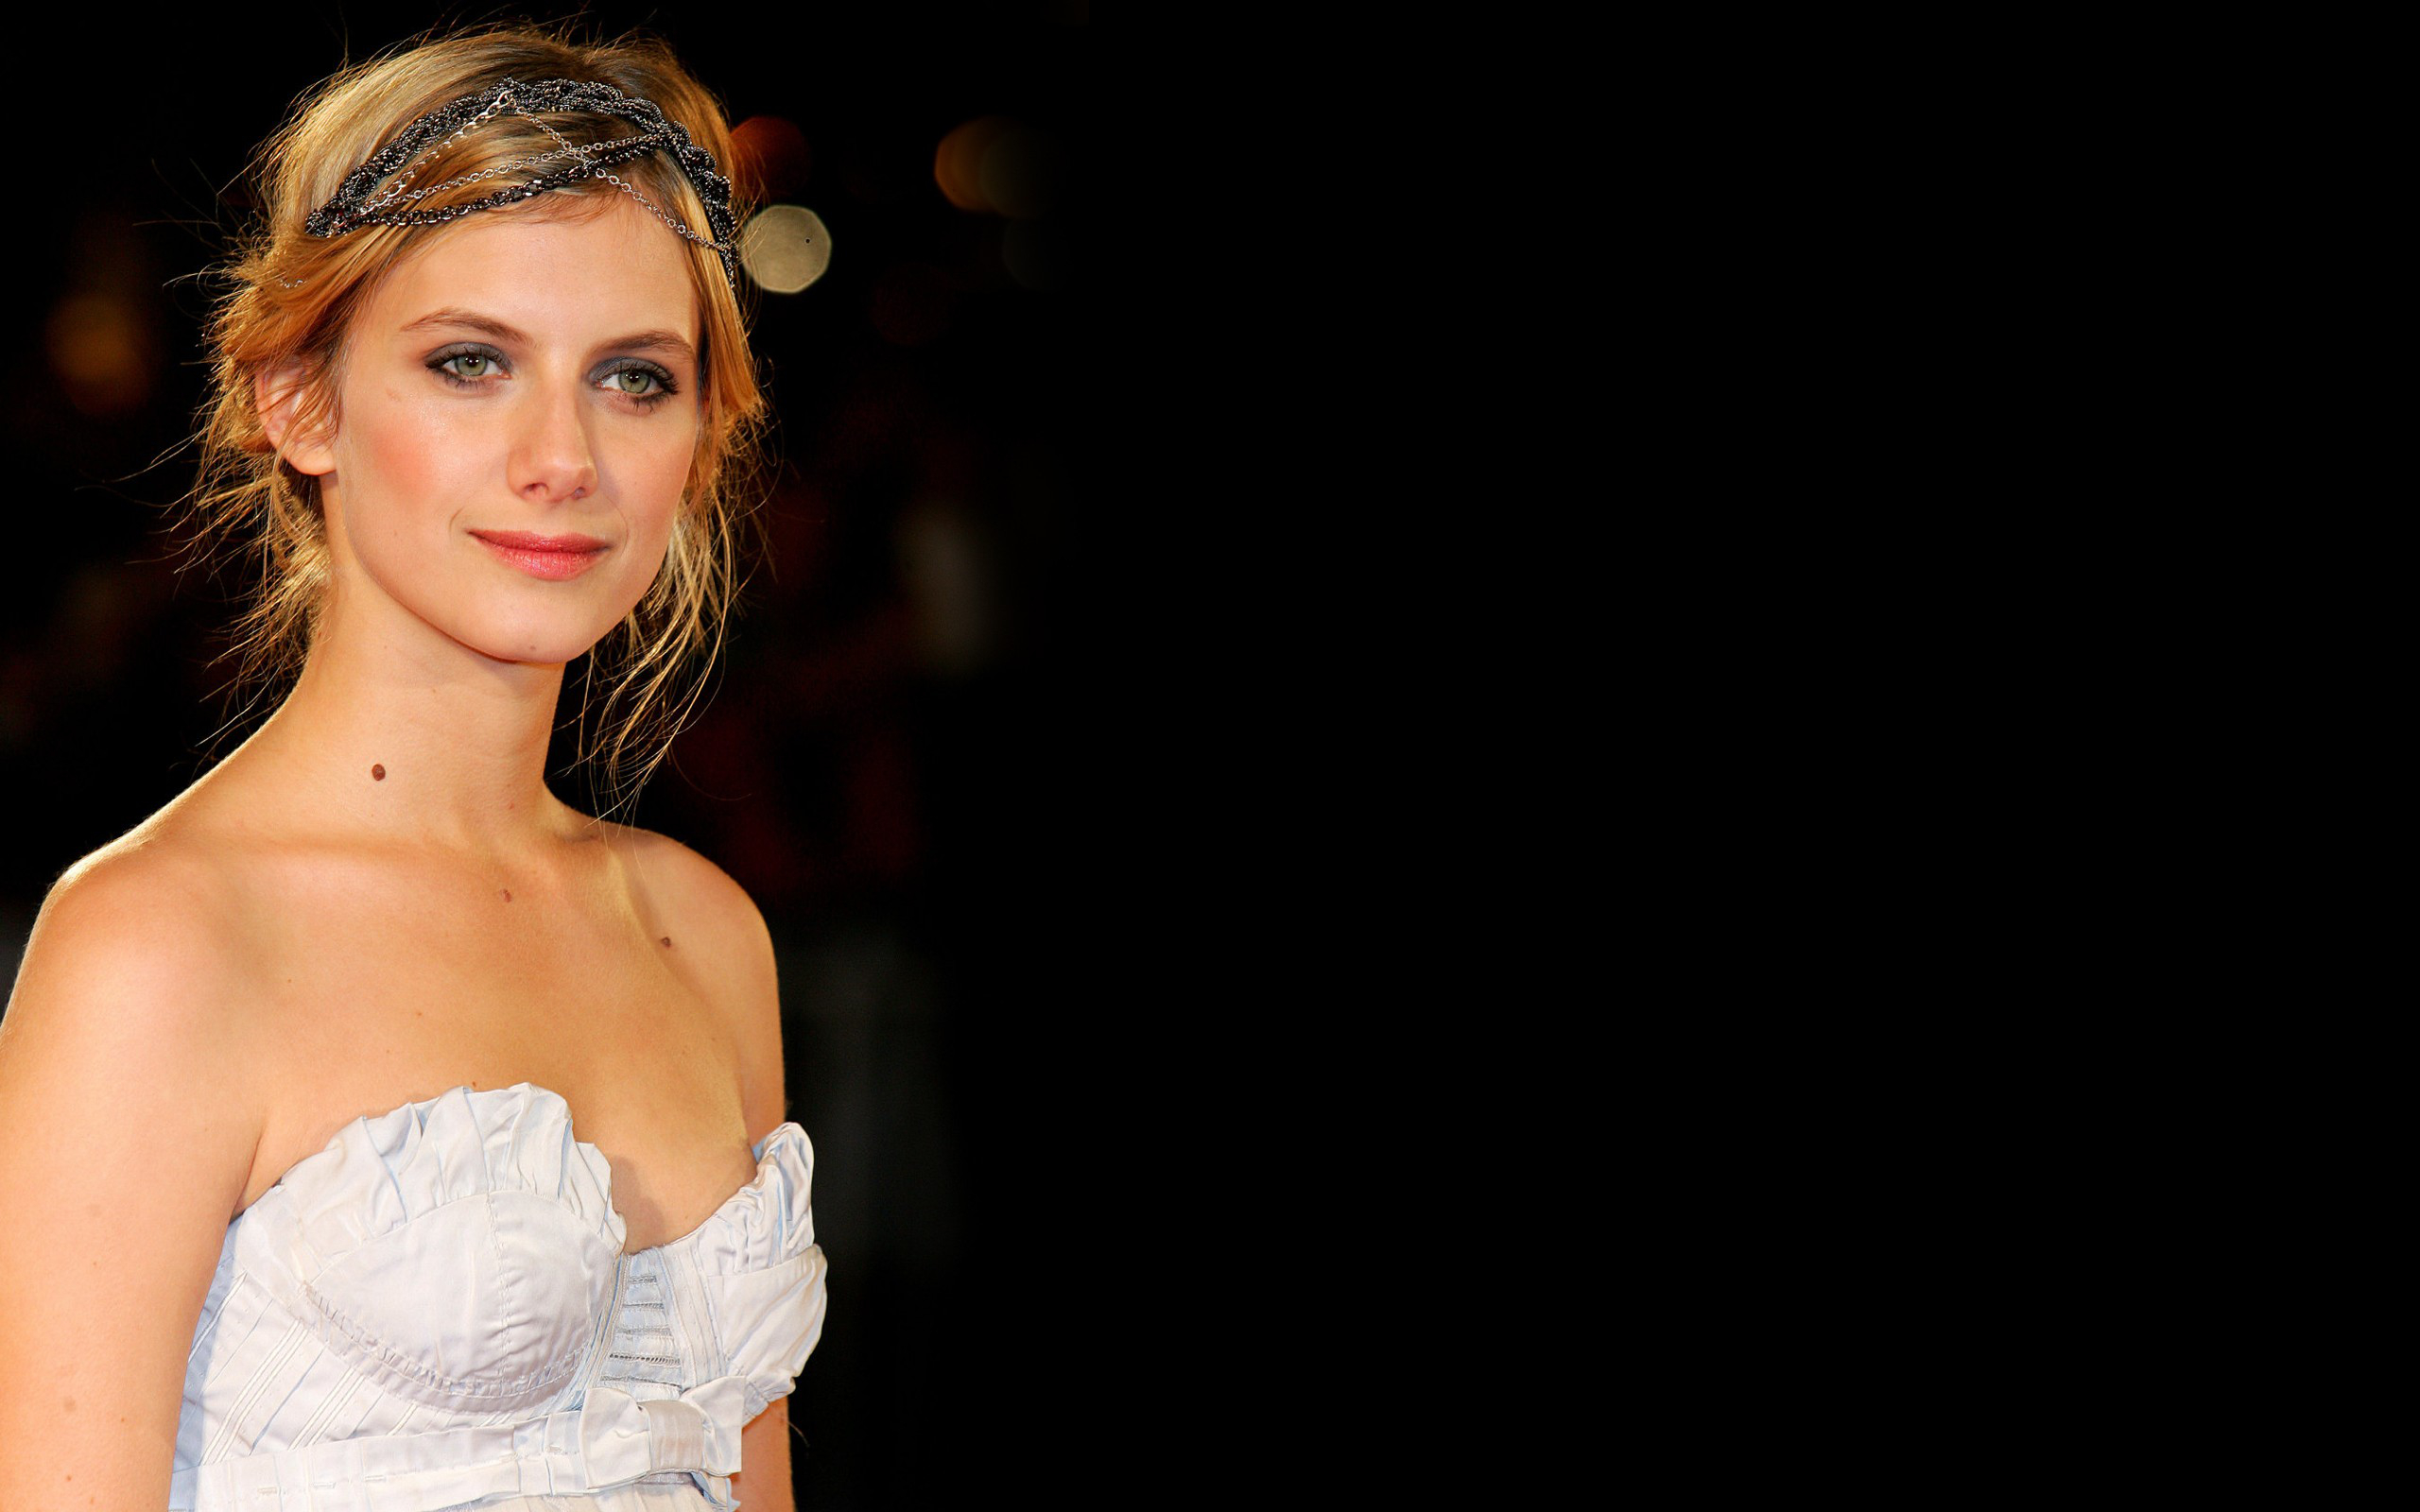 melanie laurent full hd wallpaper and background image